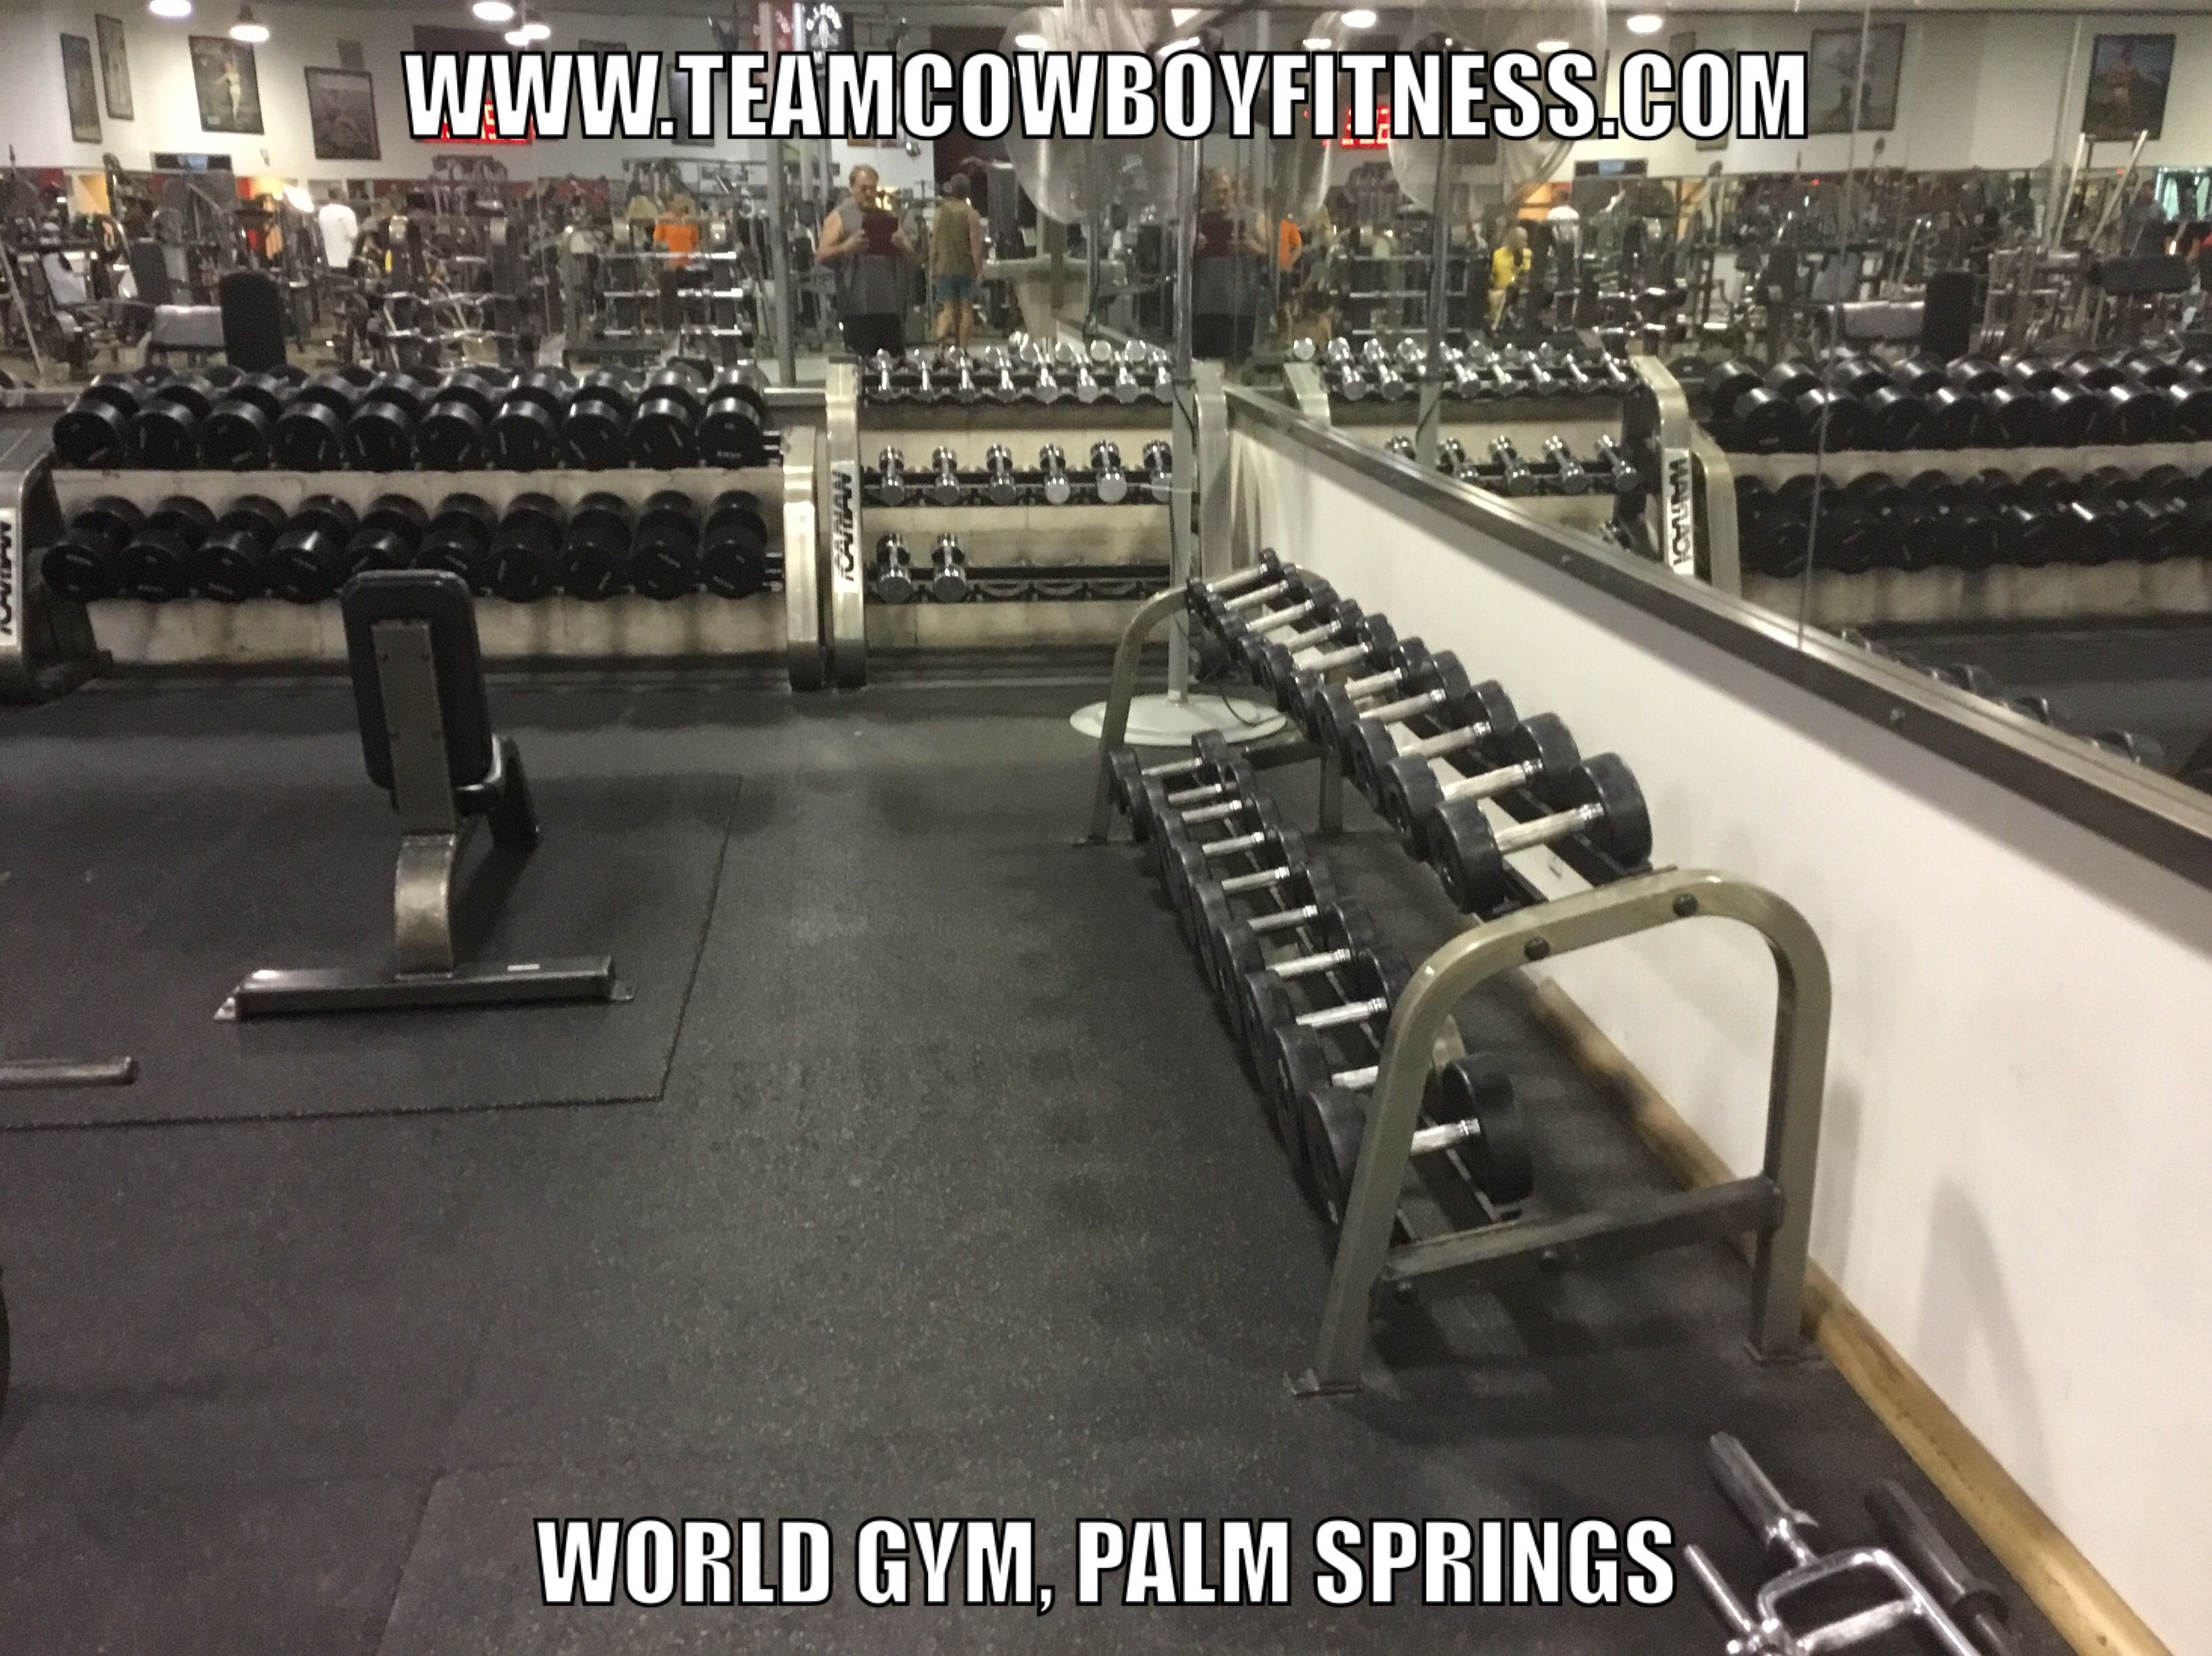 Pin By David On Team Cowboy Fitness Palm Springs Gym World